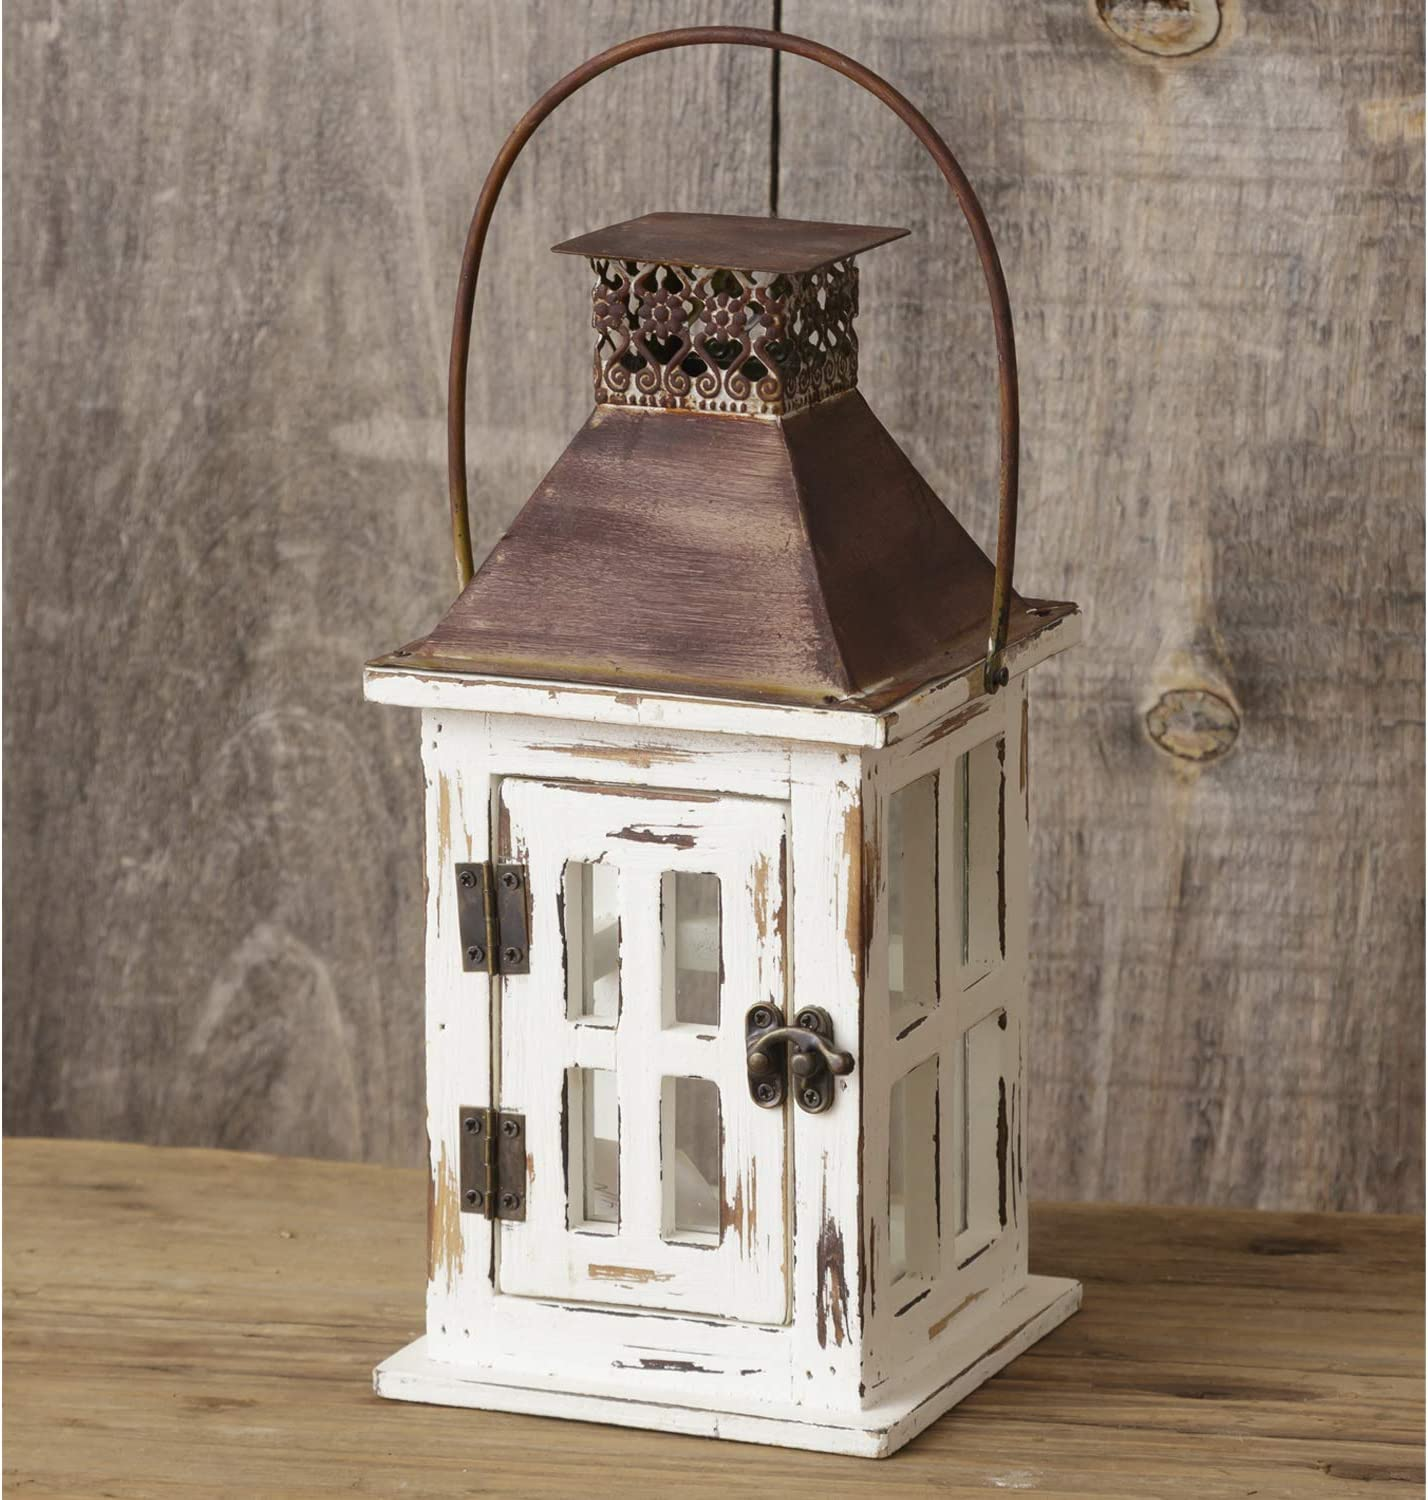 10-Inch Rustic Distressed White Wood Lantern with Metal Rust-Look Top – Hanging or Tabletop LED Candle Holder – Country Farmhouse Home Decor